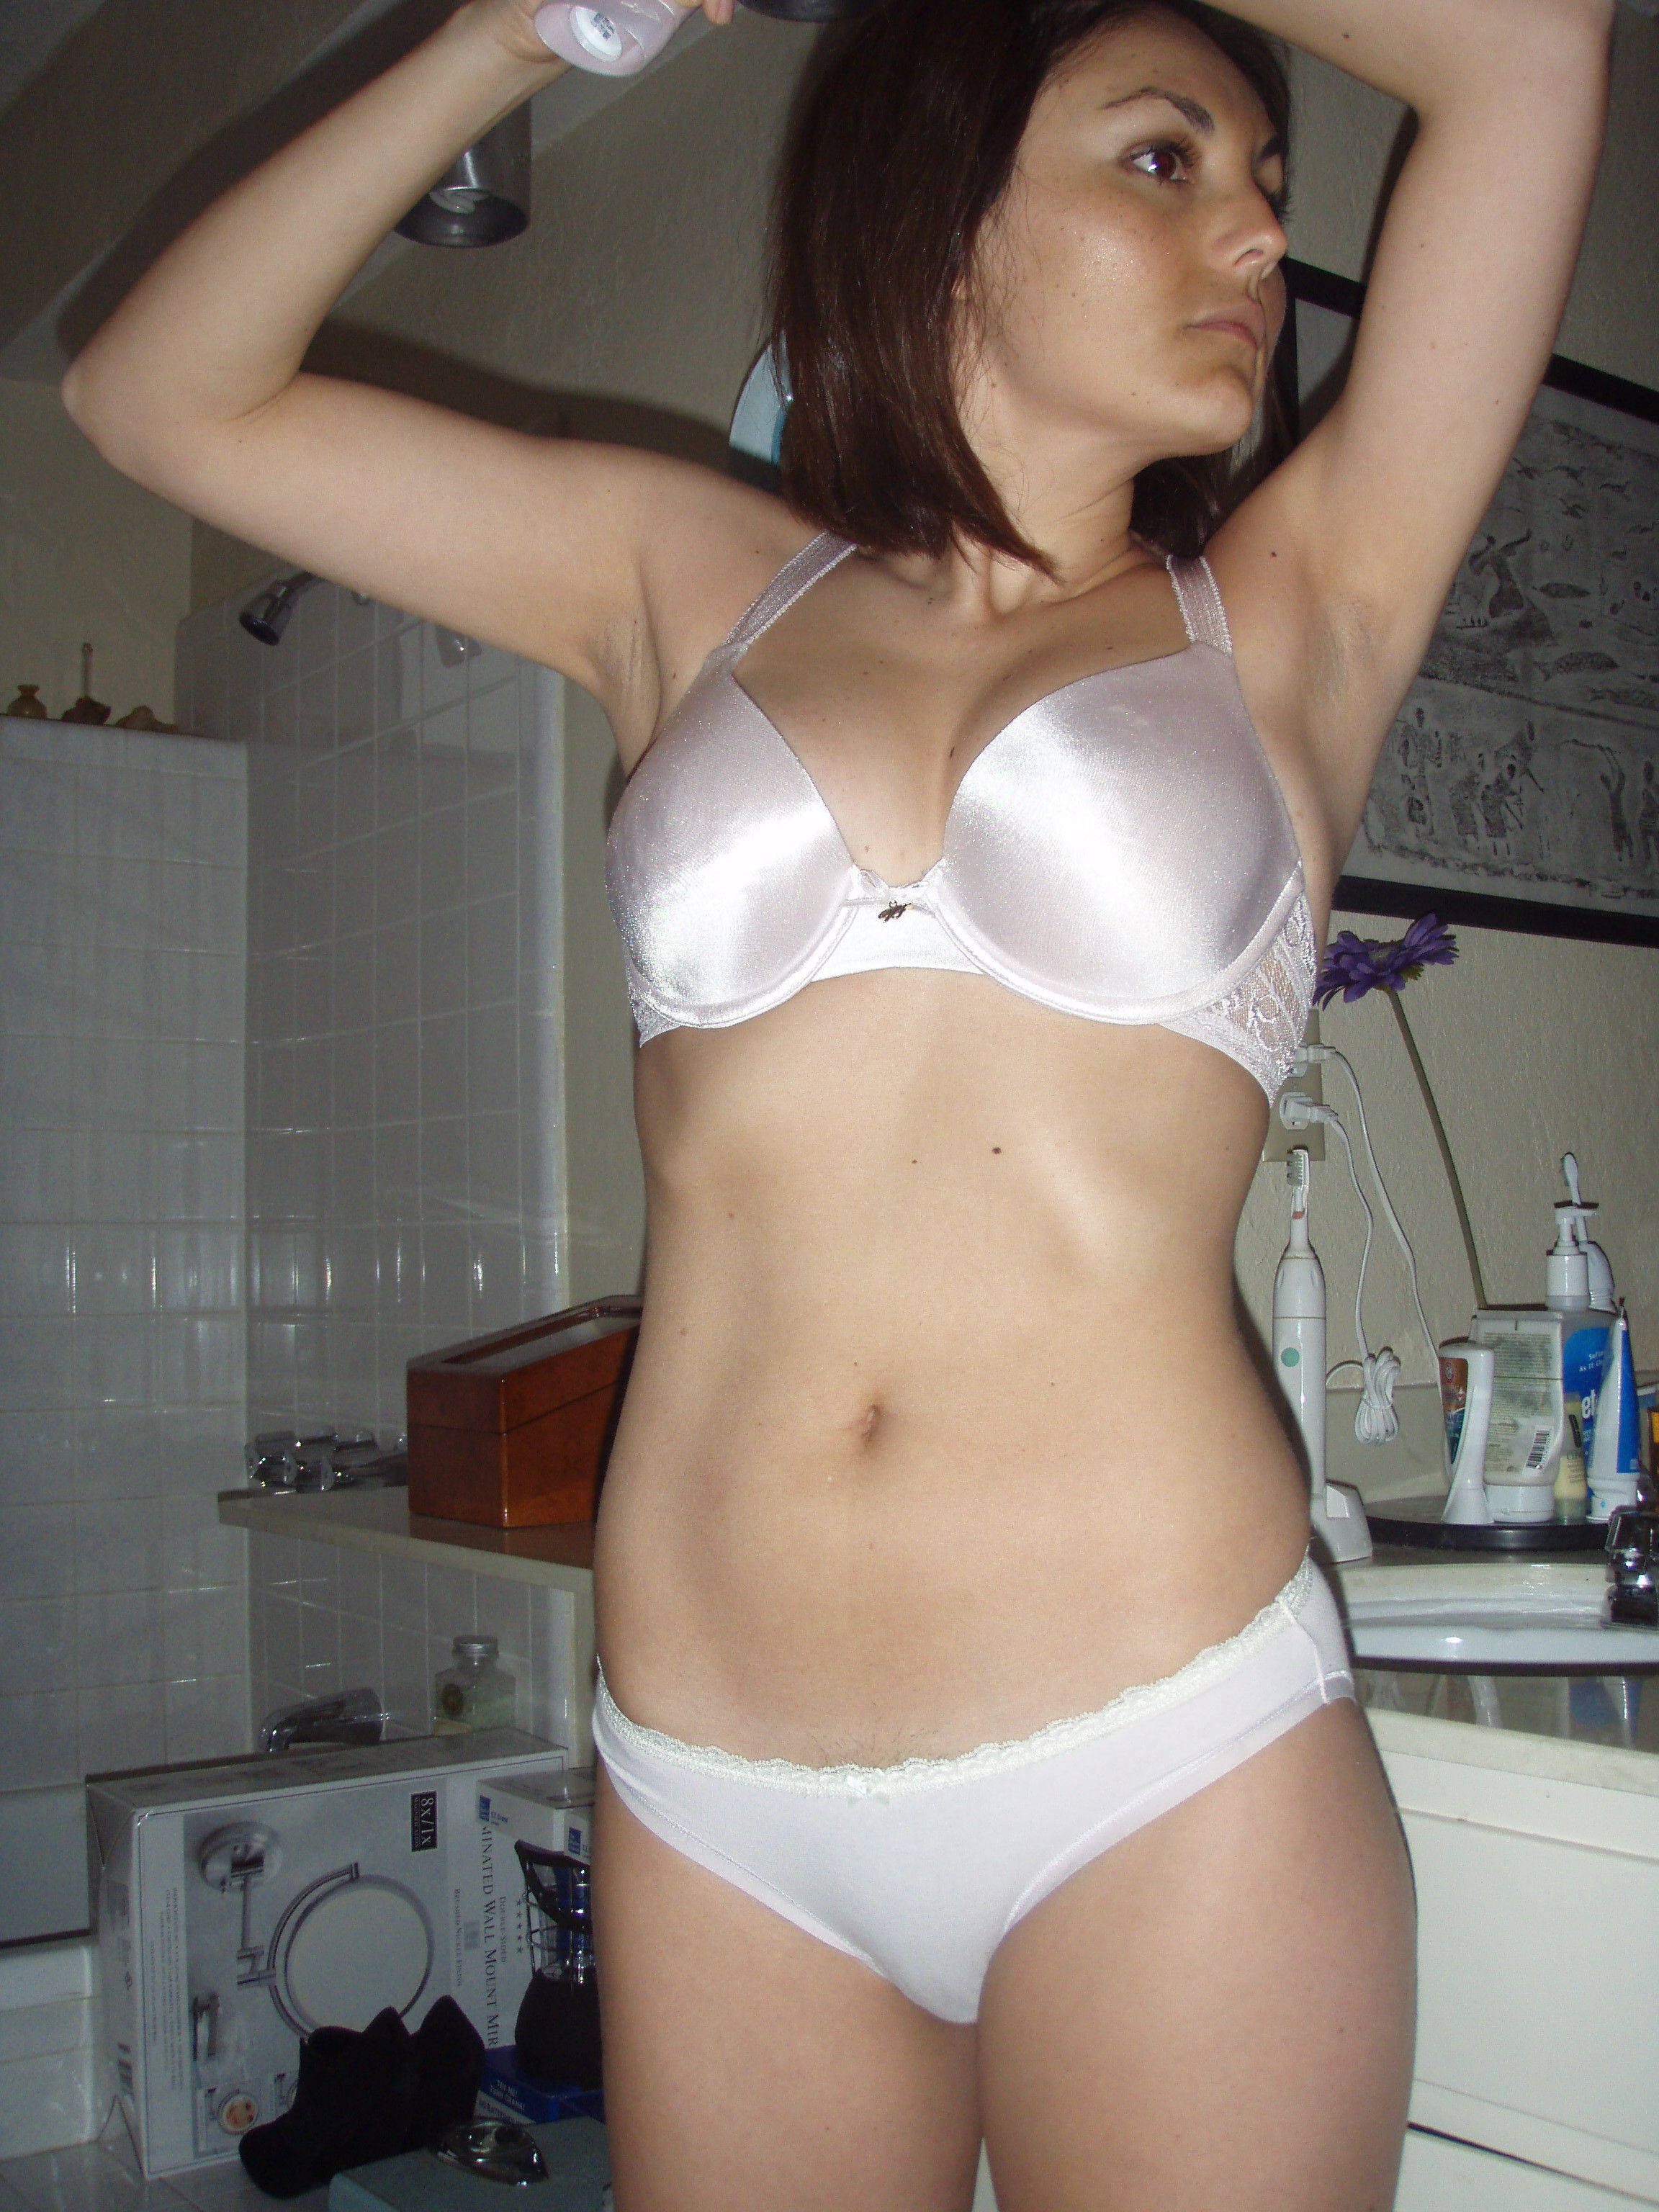 Violeta Private Pictures Hot Babe Panties Amateur Bra Indian Sexy